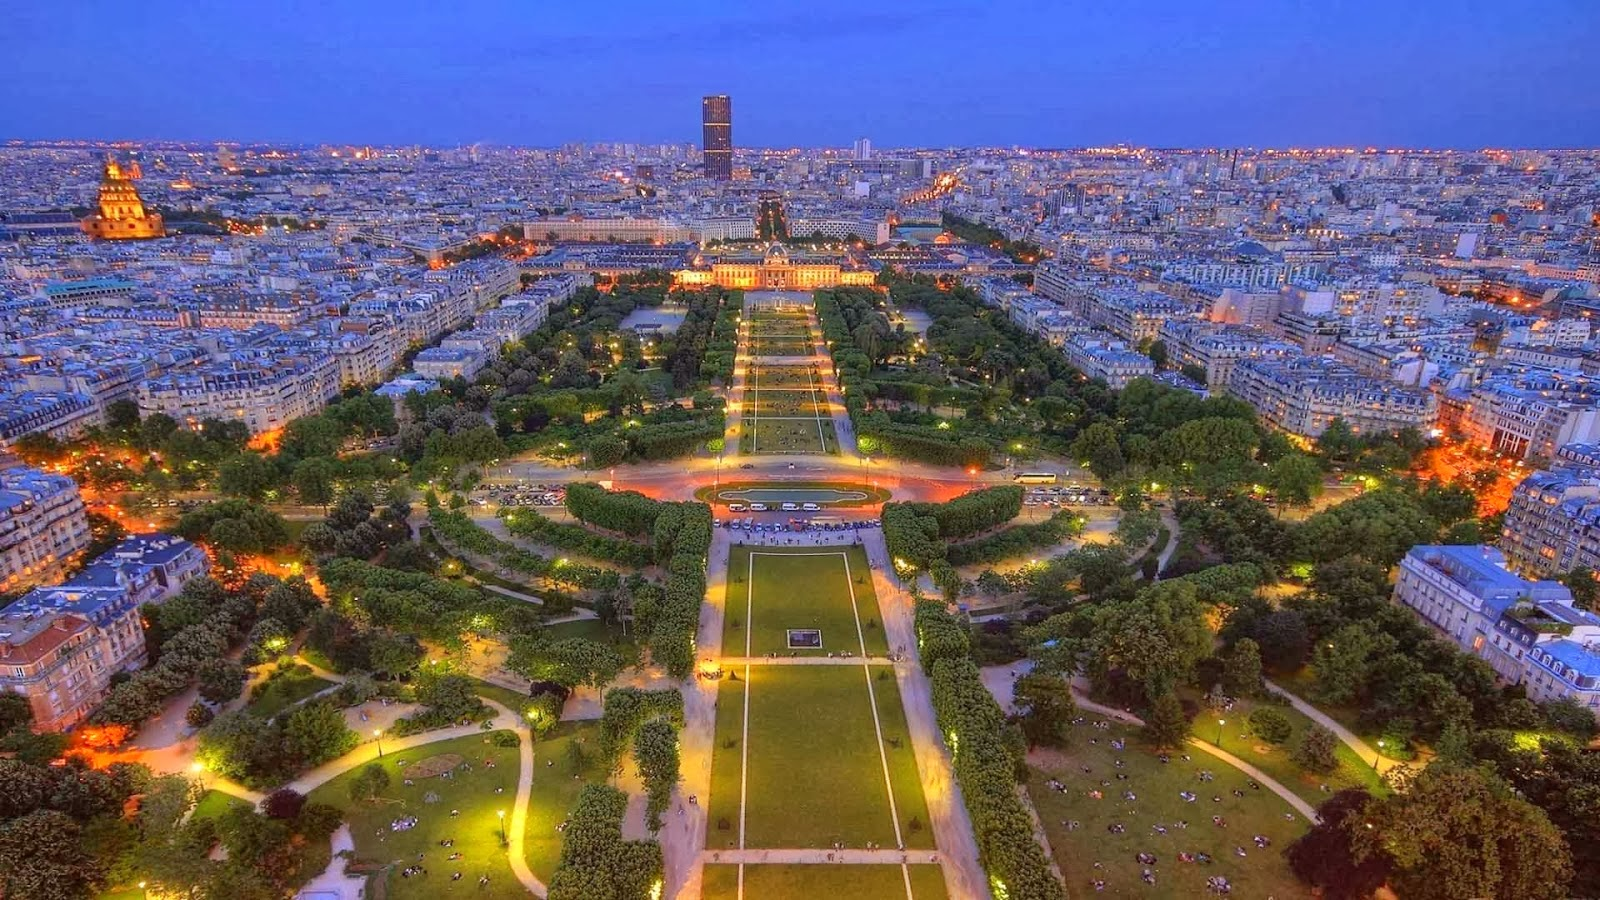 hd wallpapers: download paris city hd wallpapers in 1080p